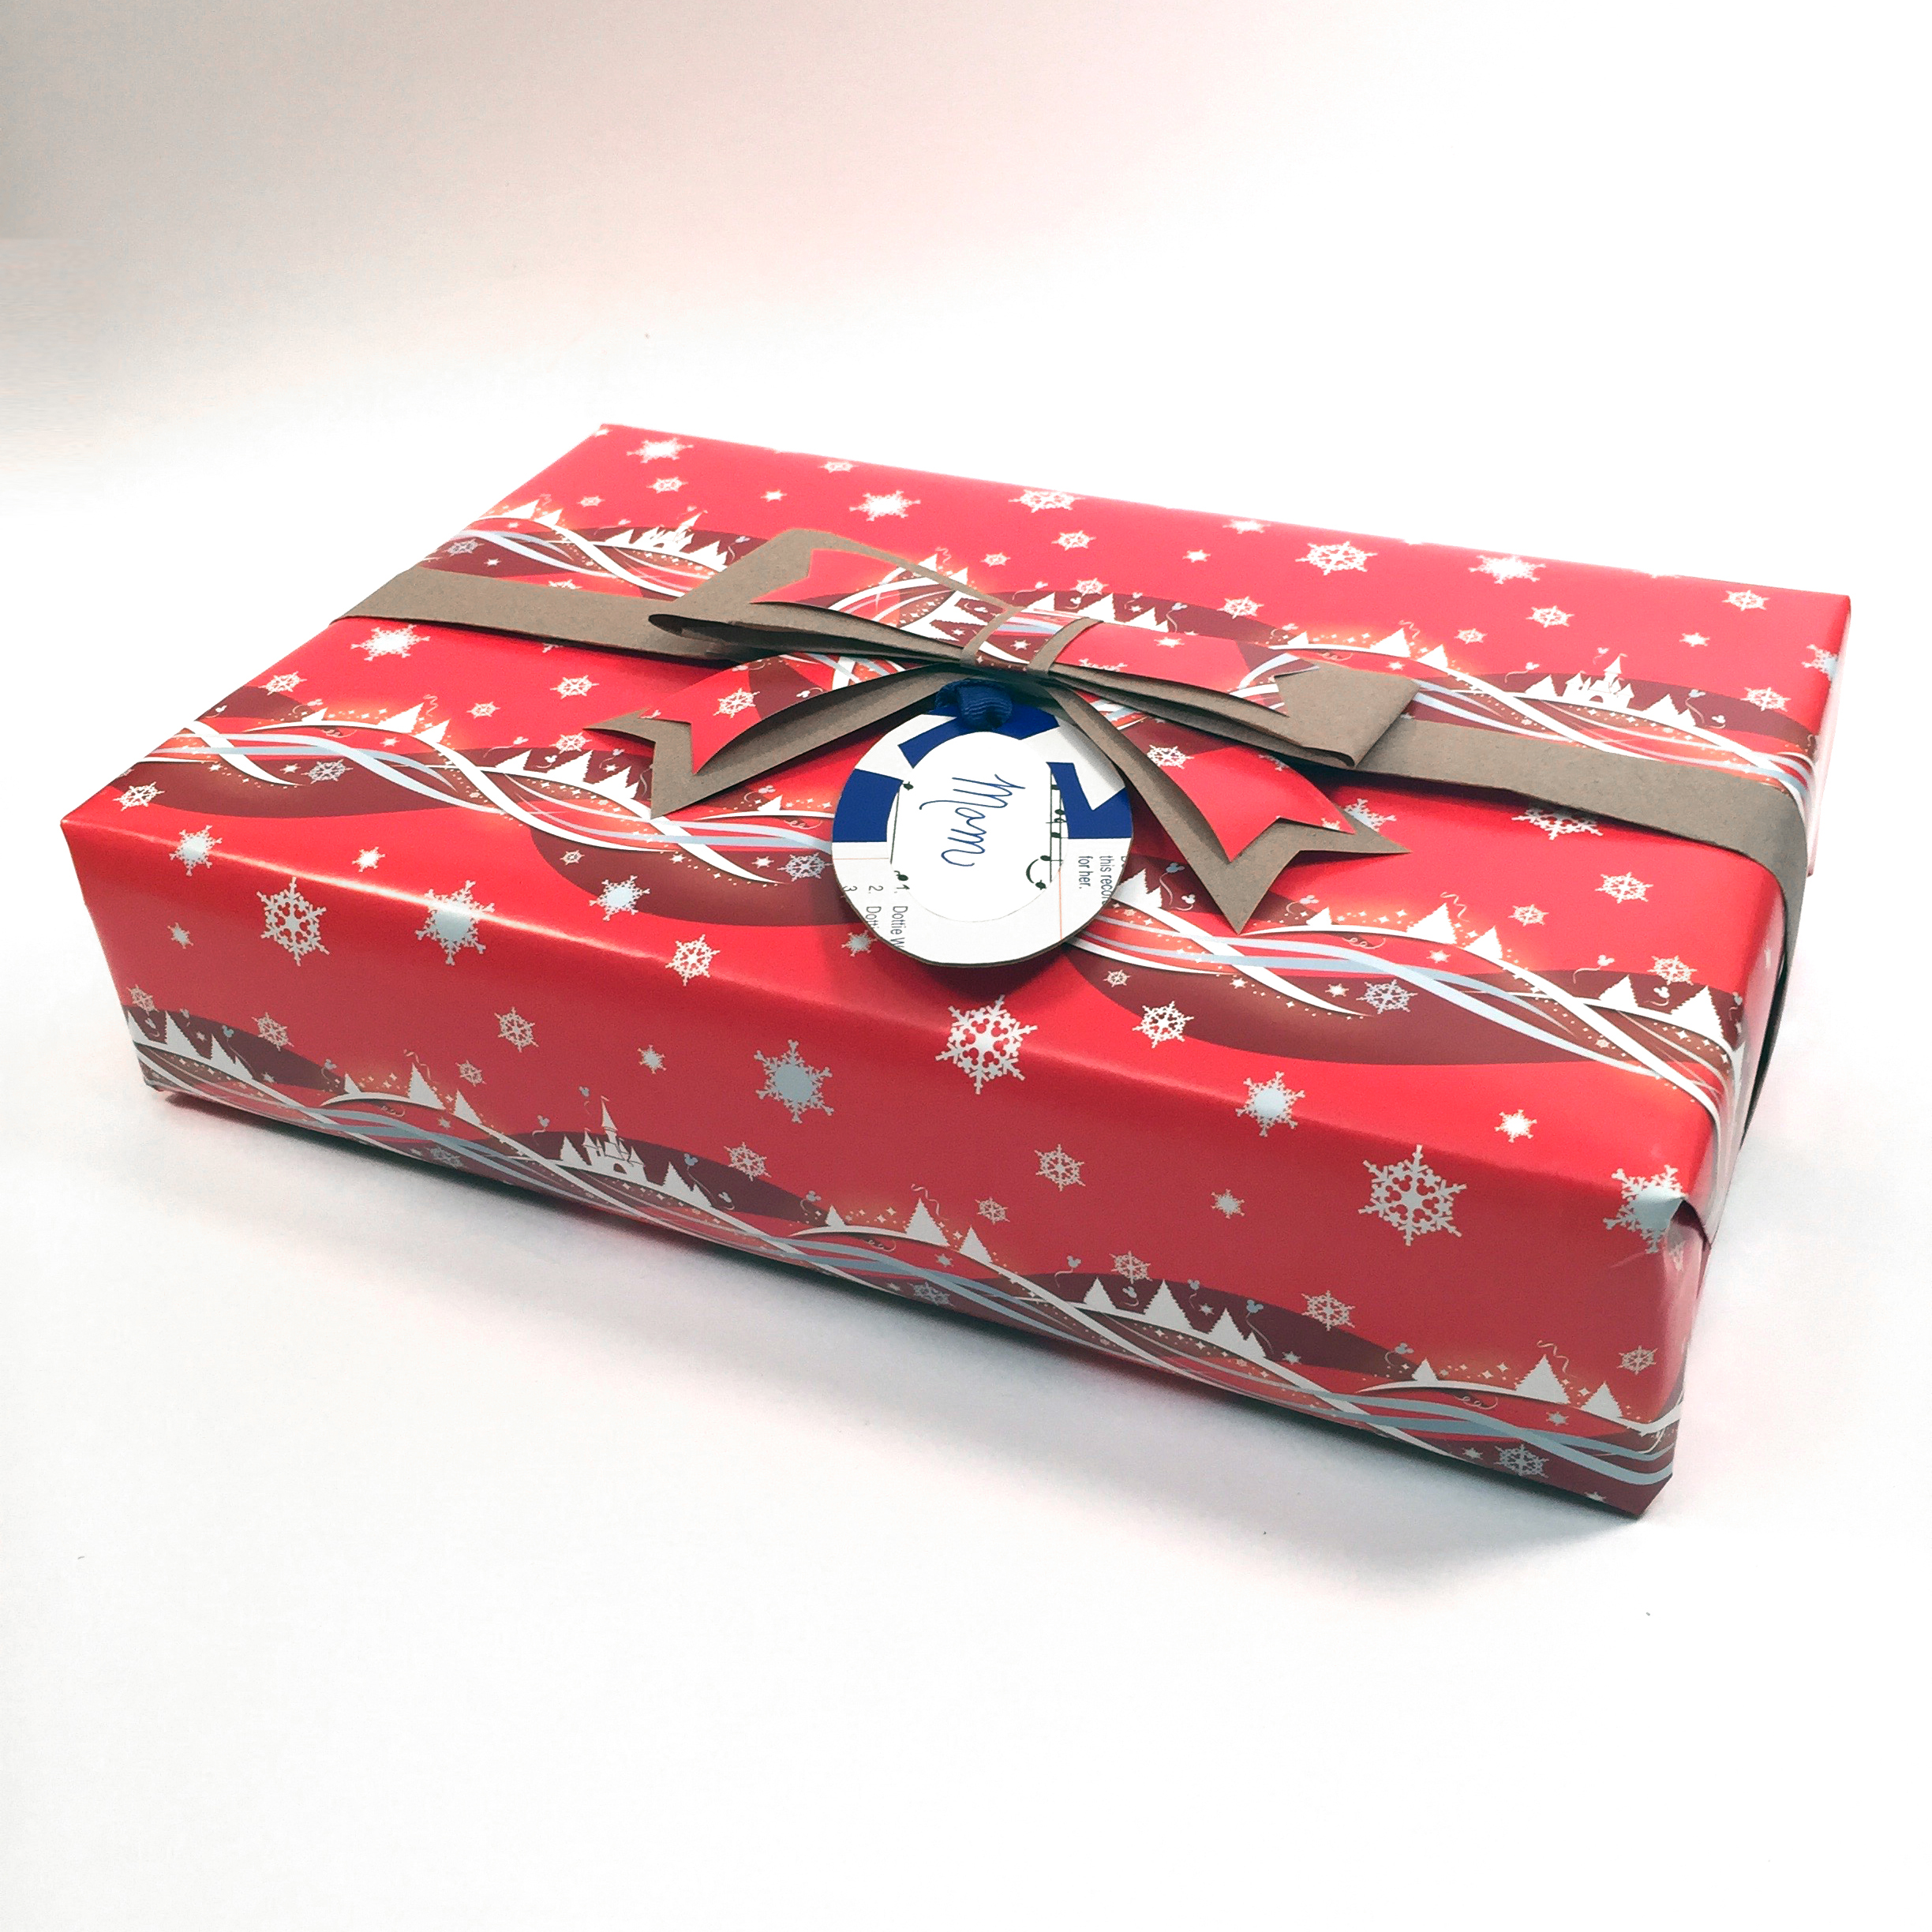 Wrapping paper gift.jpg